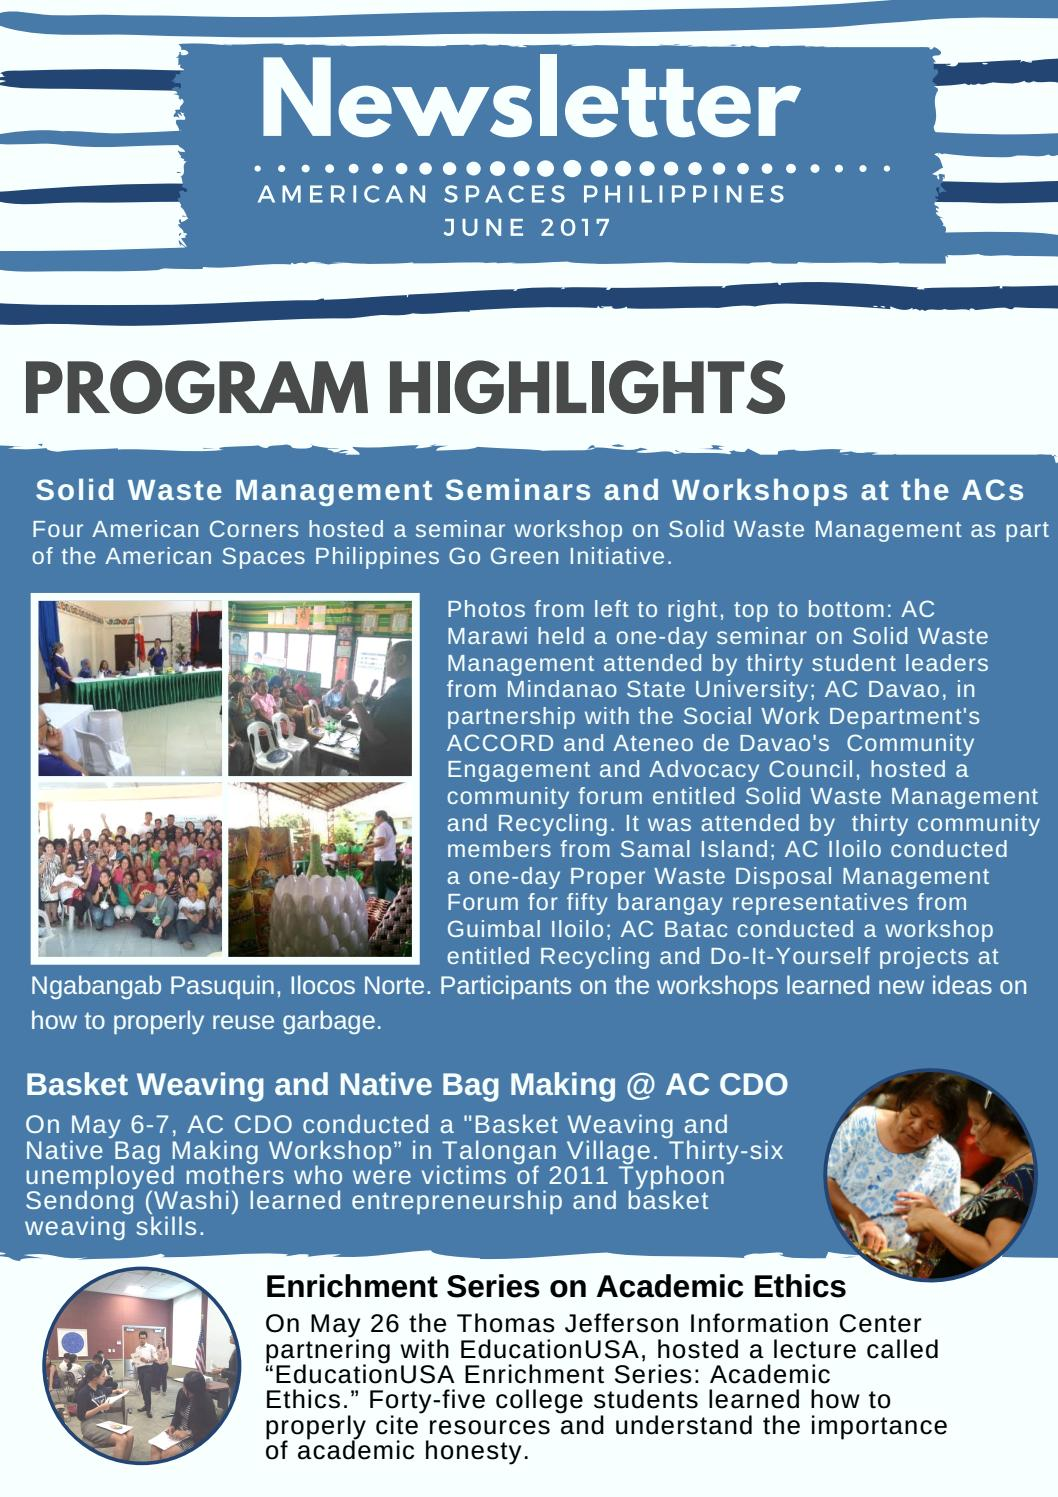 AmSpacesPH Newsletter (June 2017) by American Spaces